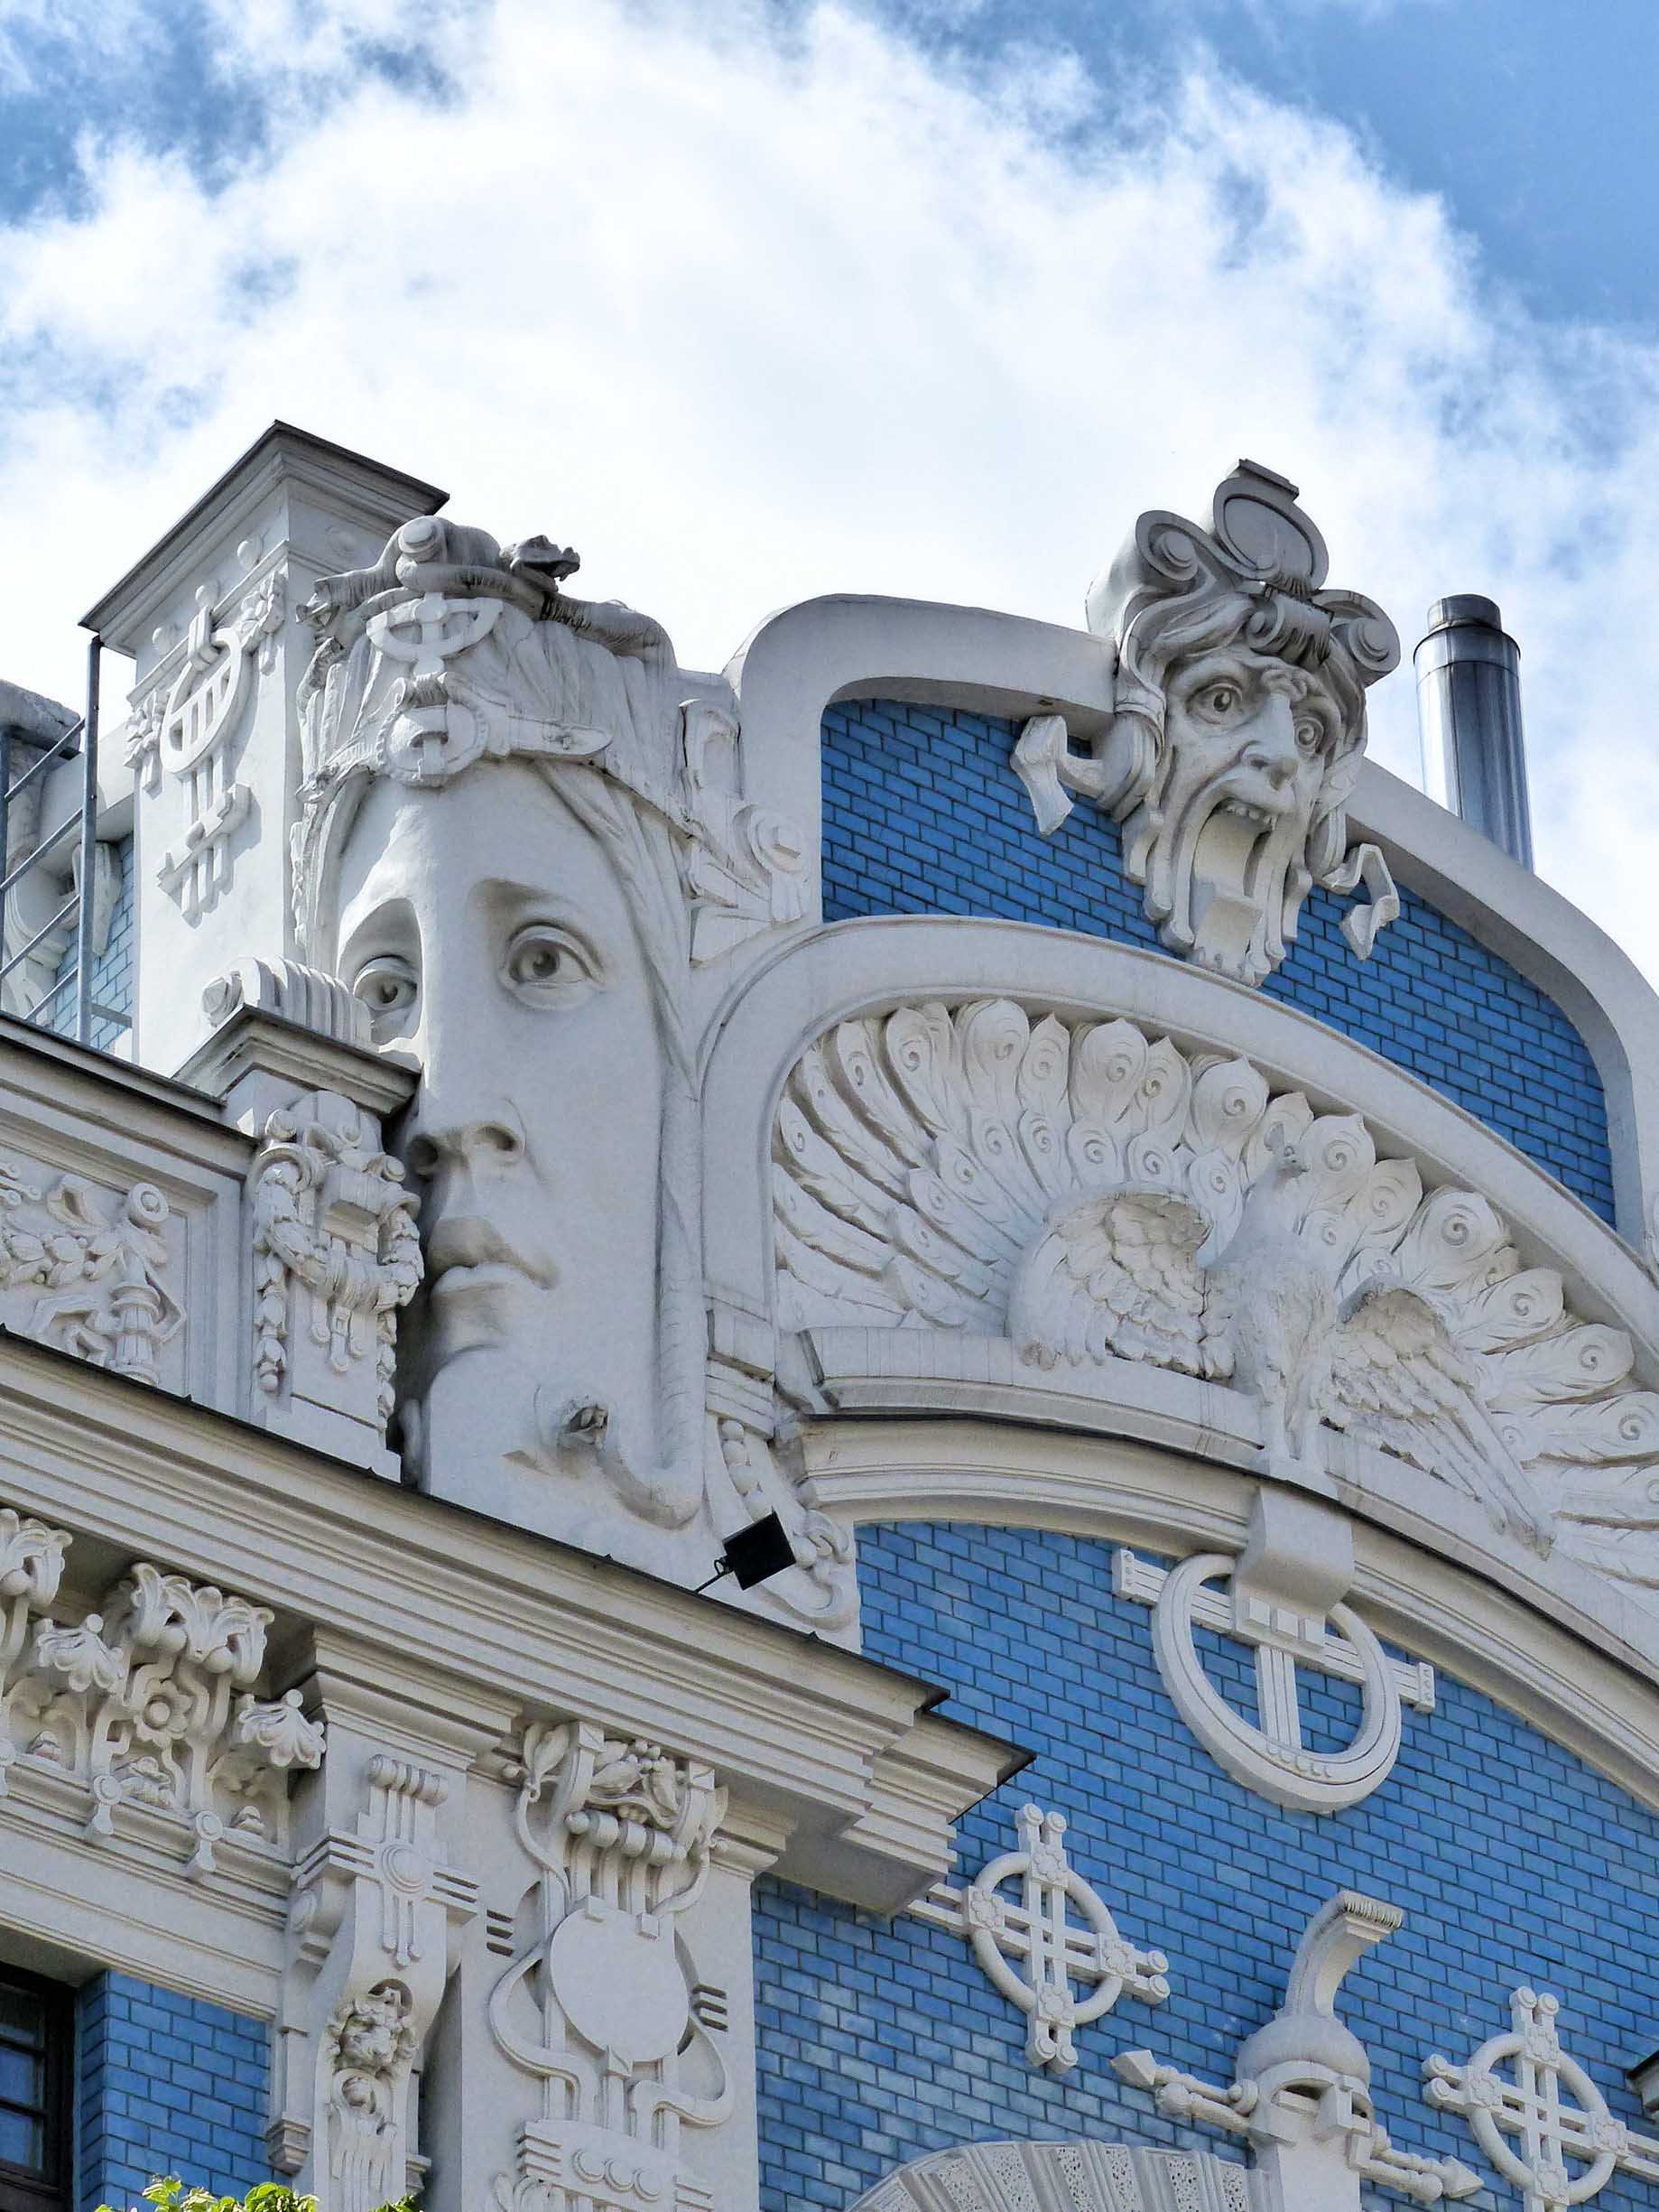 Ornate blue building with large female face and other details carved in white stone